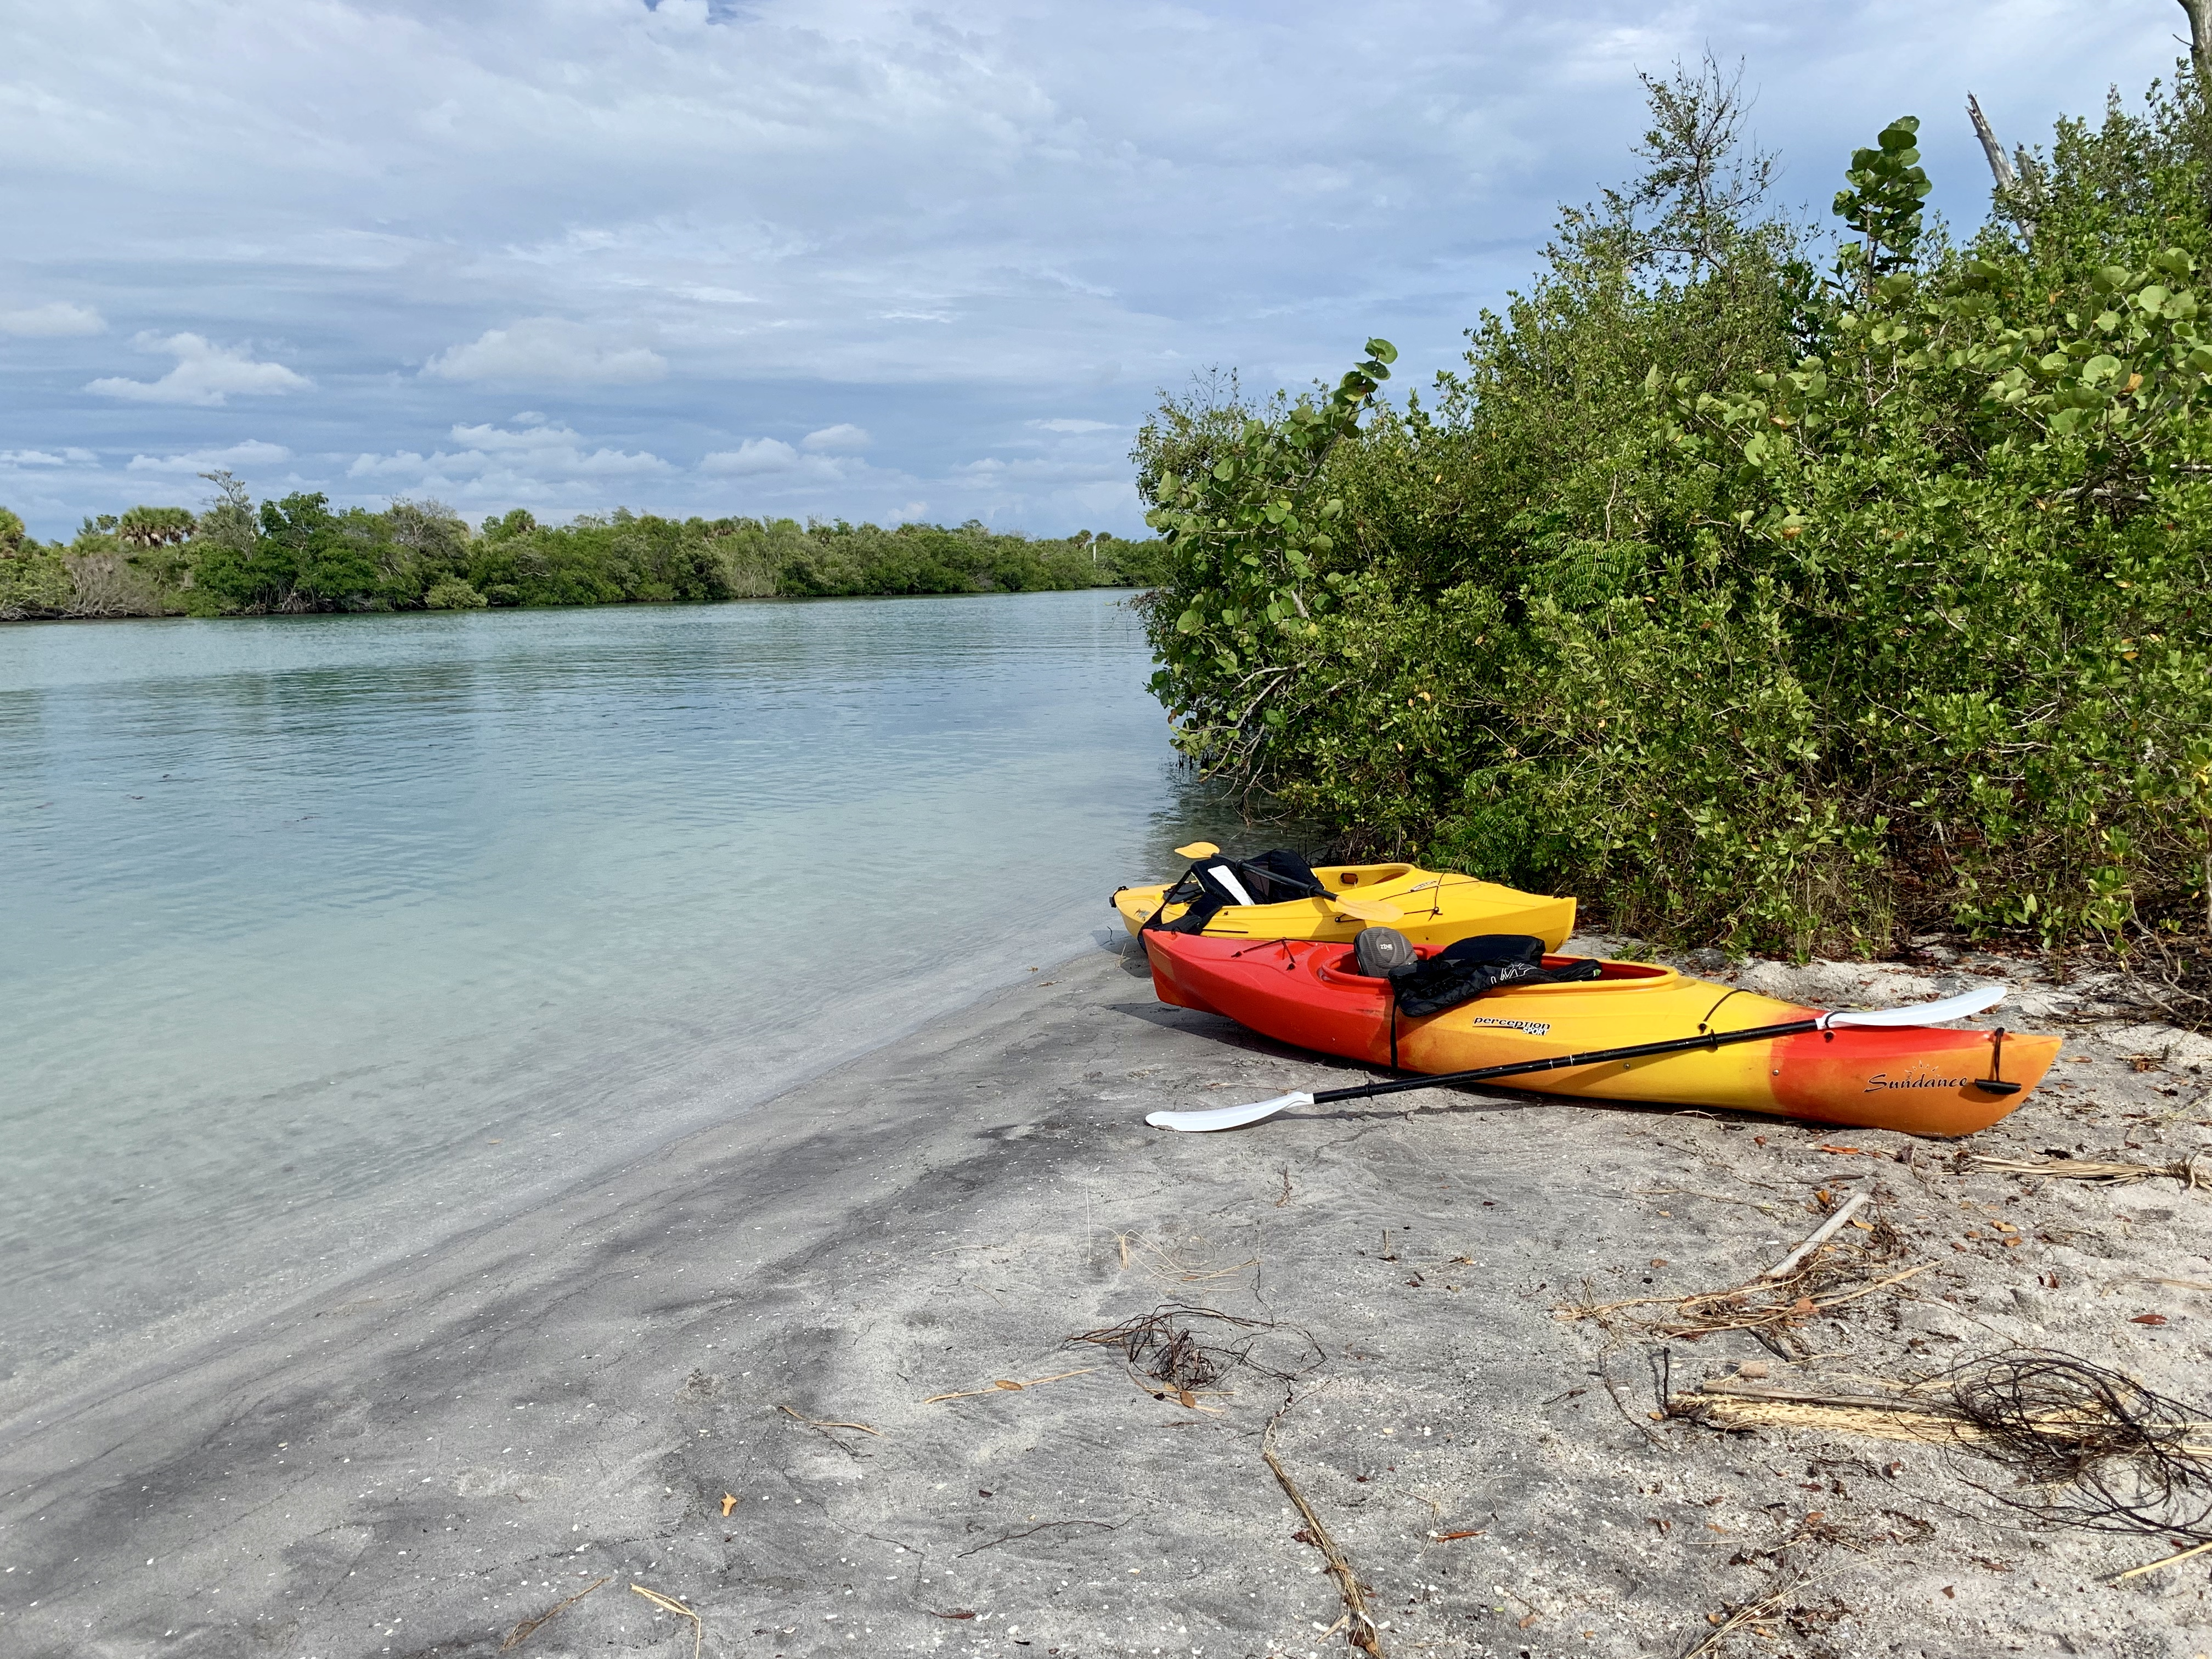 Kayakers on Lemon Bay take a pause at Stump Pass Beach State Park, Manasota Key. Photo by AY.